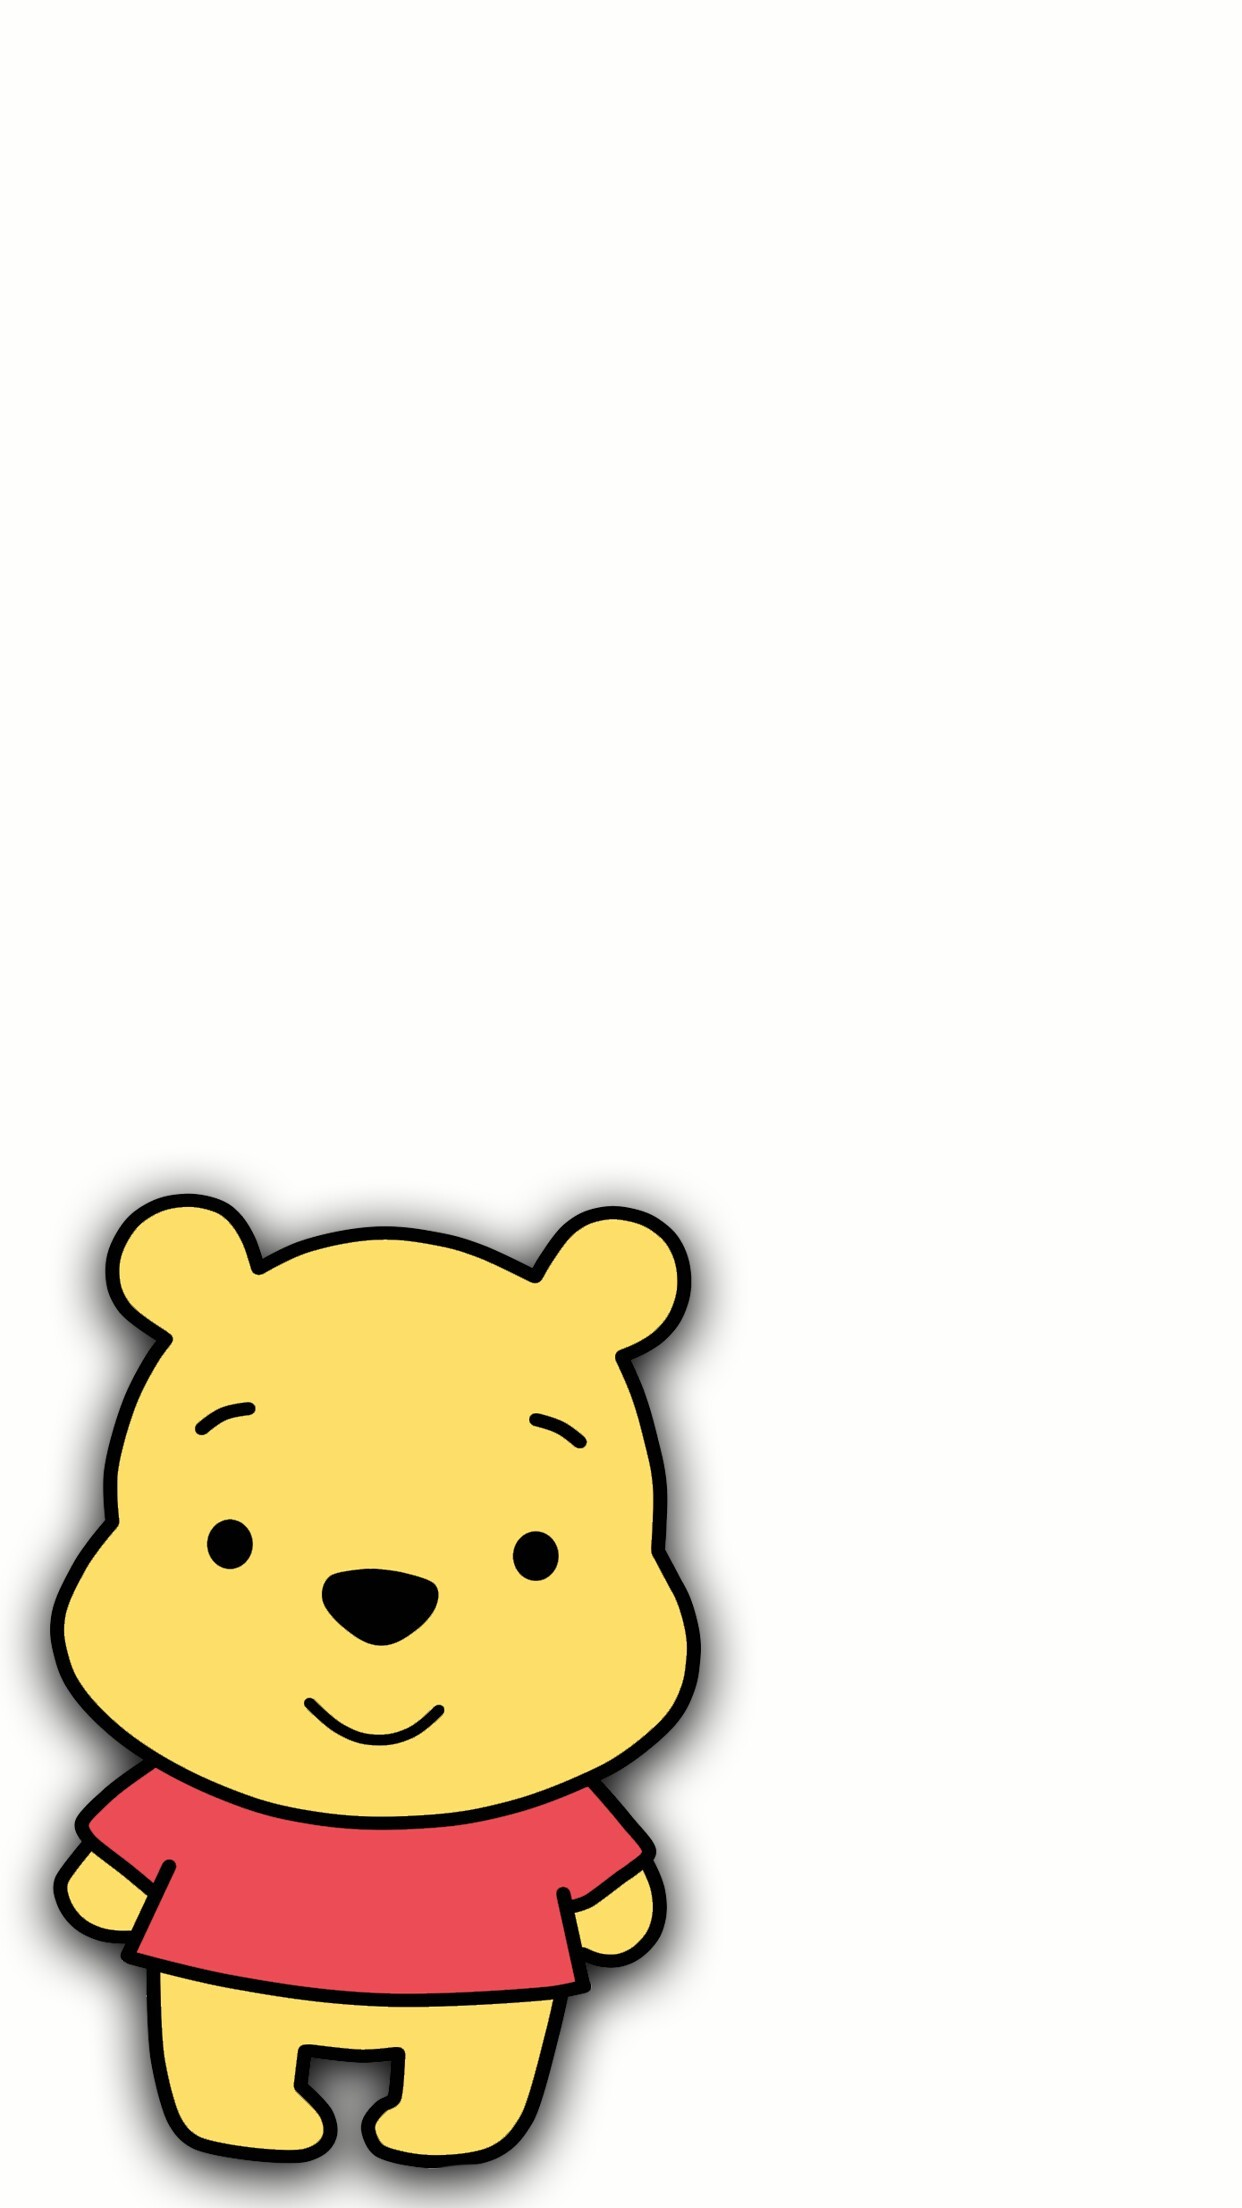 1242x2208 Bear Wallpaper, Hd Wallpaper Android, Wallpaper Backgrounds, Iphone  Wallpapers, Tumblers, Pooh Bear, Wall Papers, Backgrounds, Wallpapers